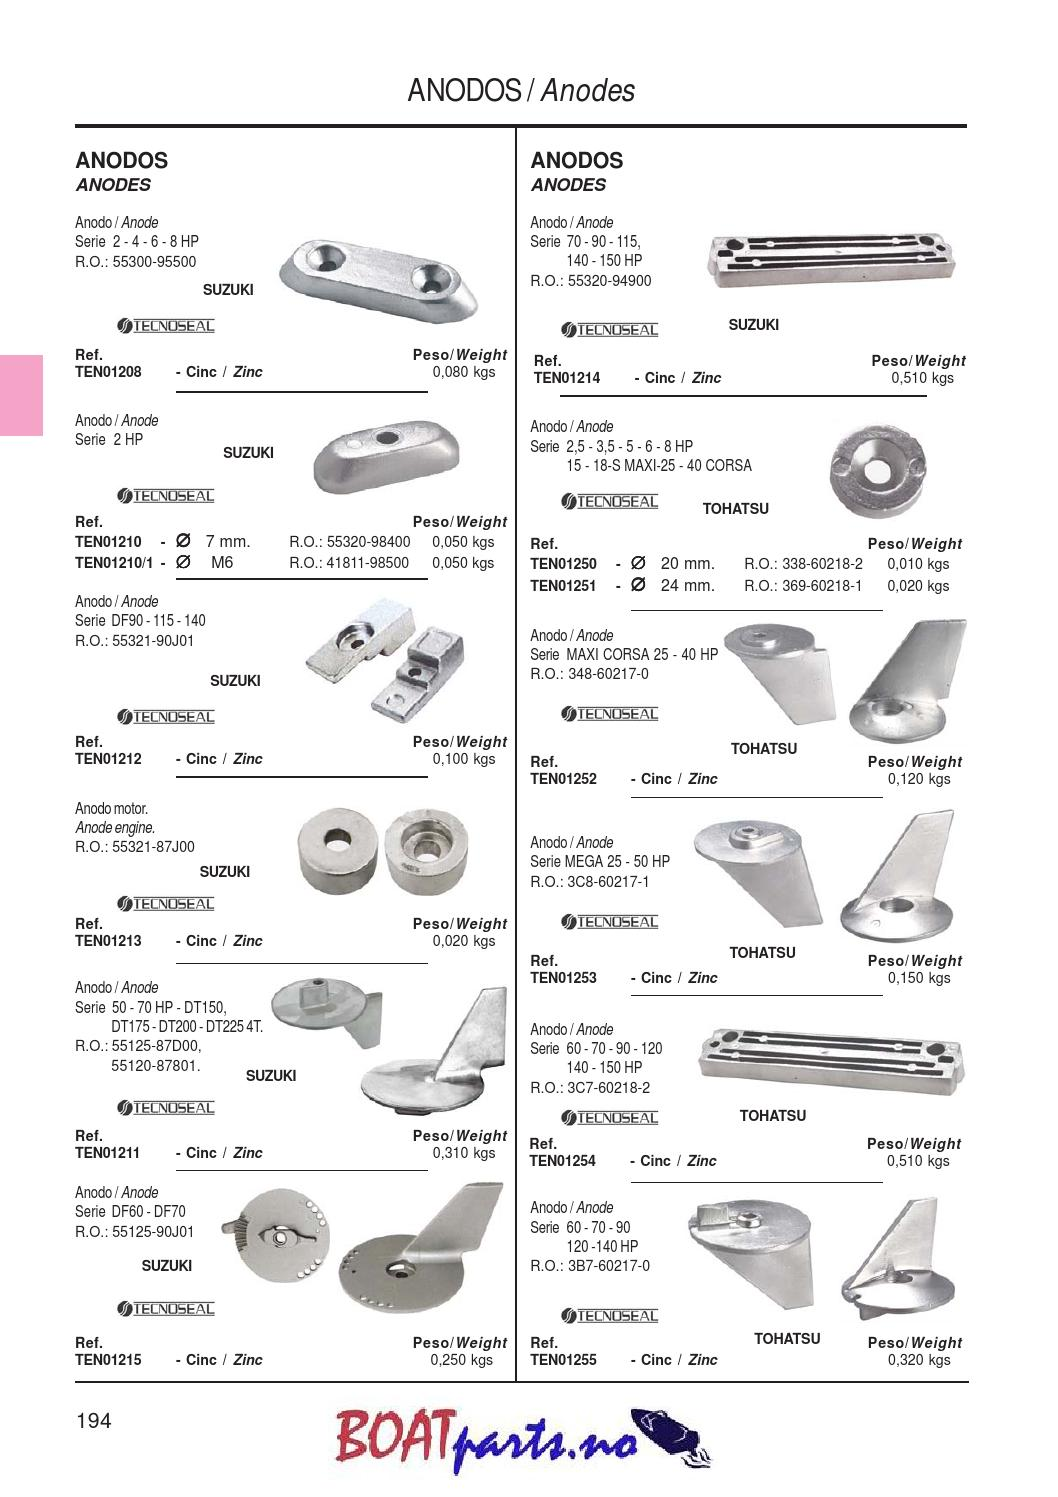 Rekvisitakatalog by Boatparts no AS - issuu